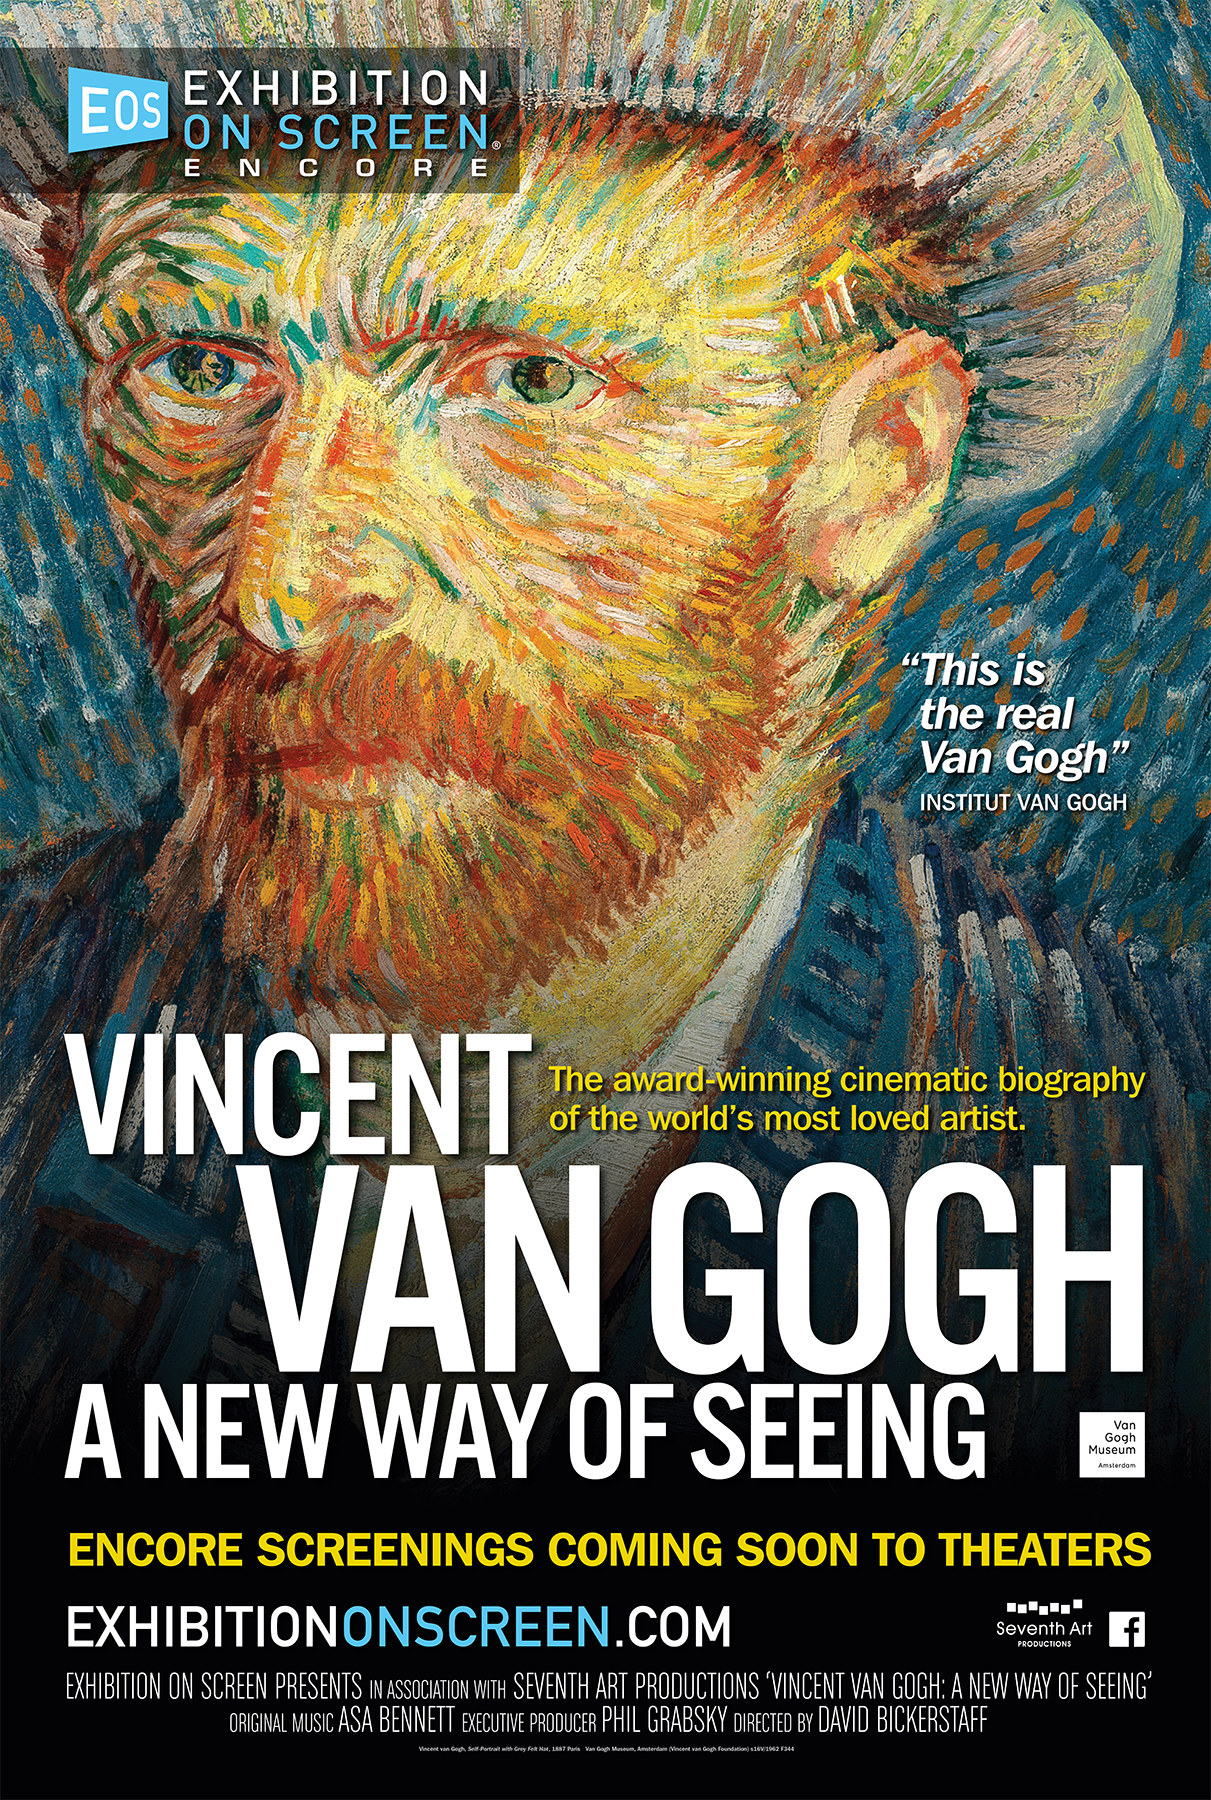 [EOS] VINCENT VAN GOGH: A NEW WAY OF SEEING